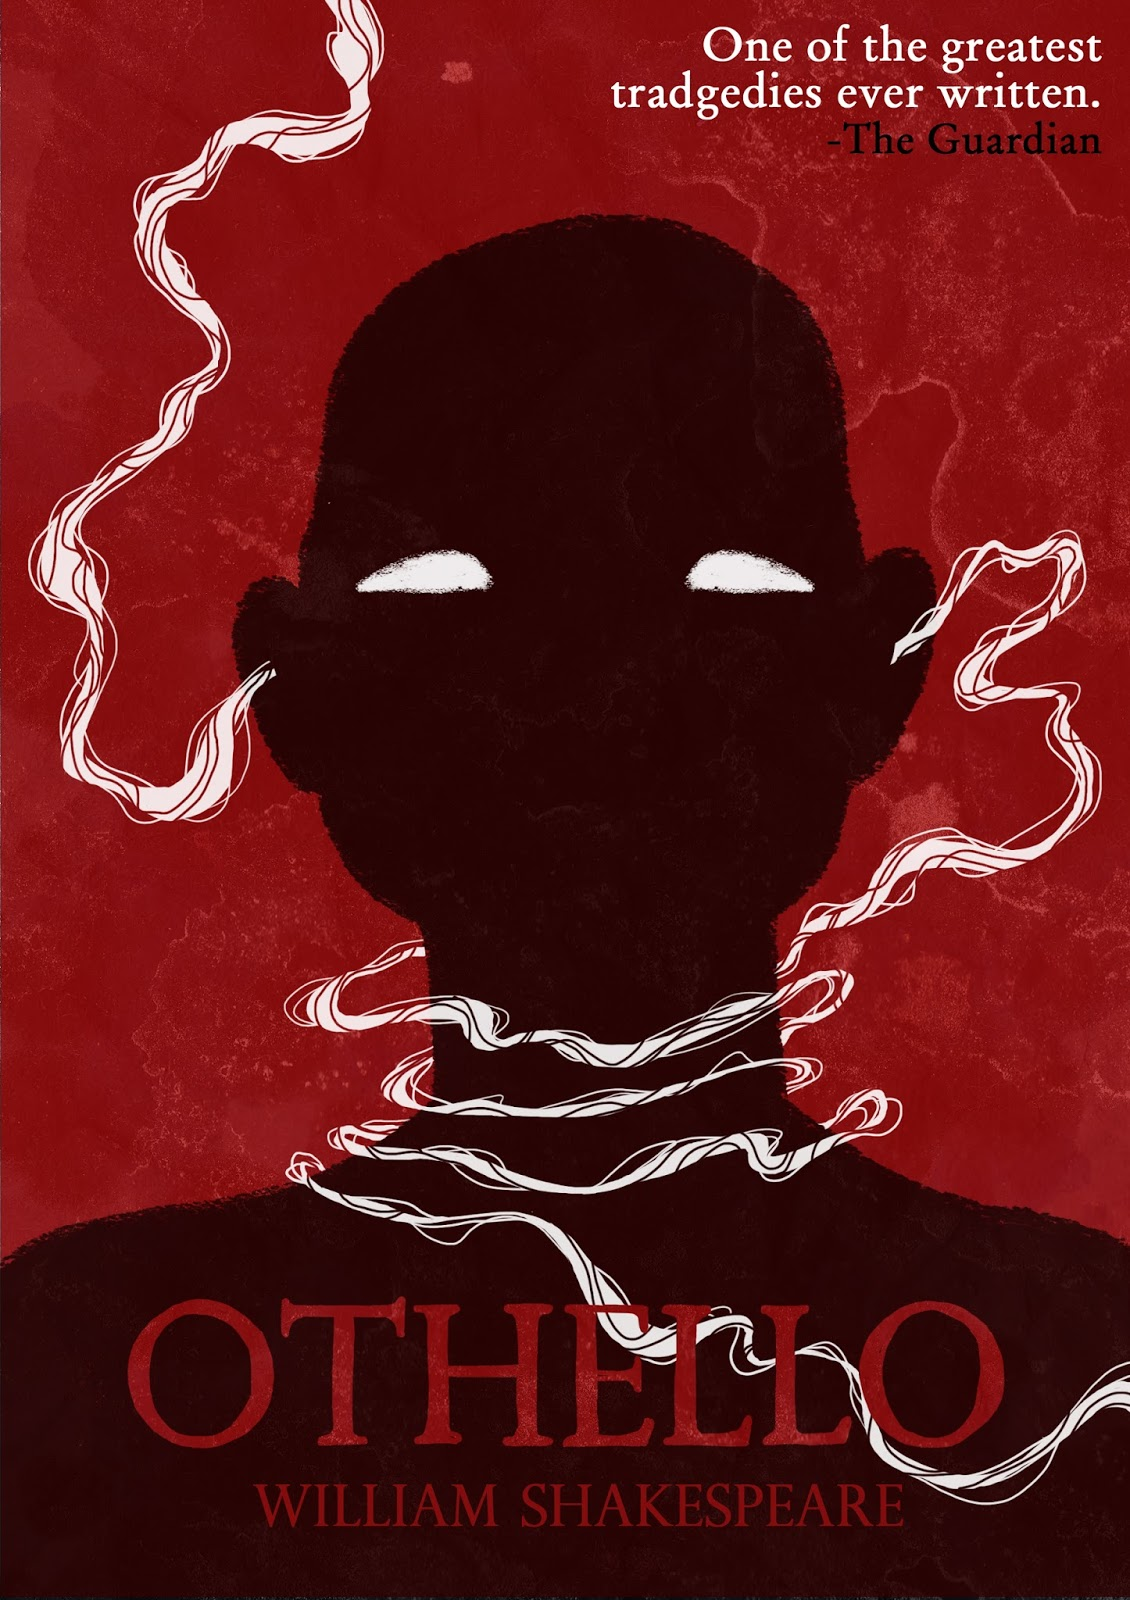 Jealousy as the cause of othellos downfall in othello a play by william shakespeare